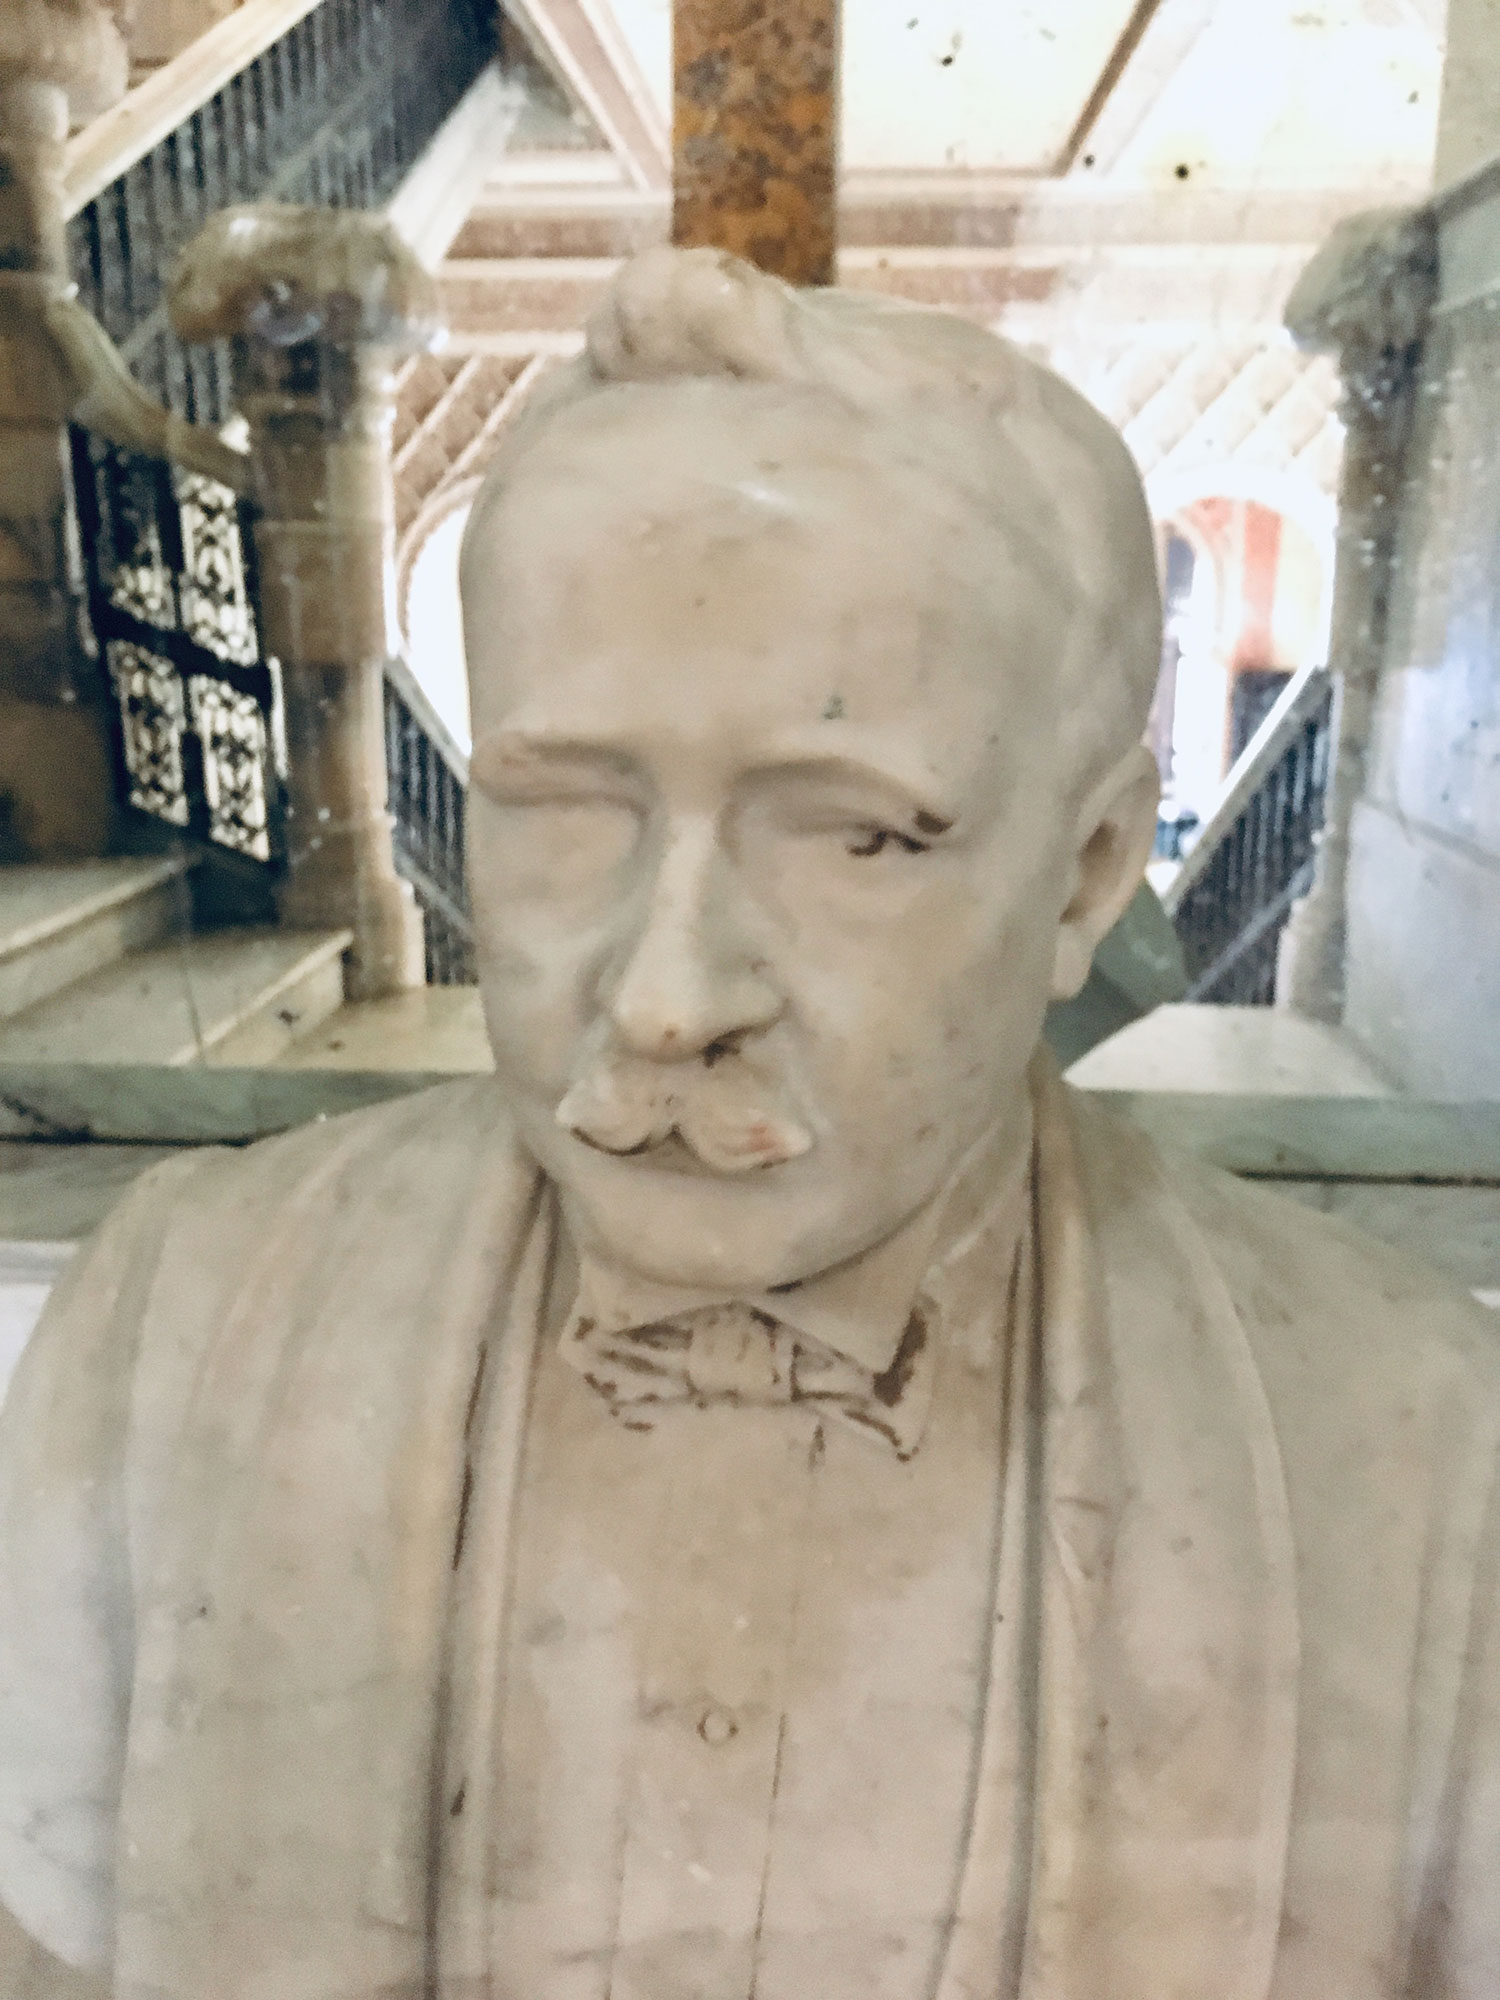 The bust of Don del Valle in the Palace.